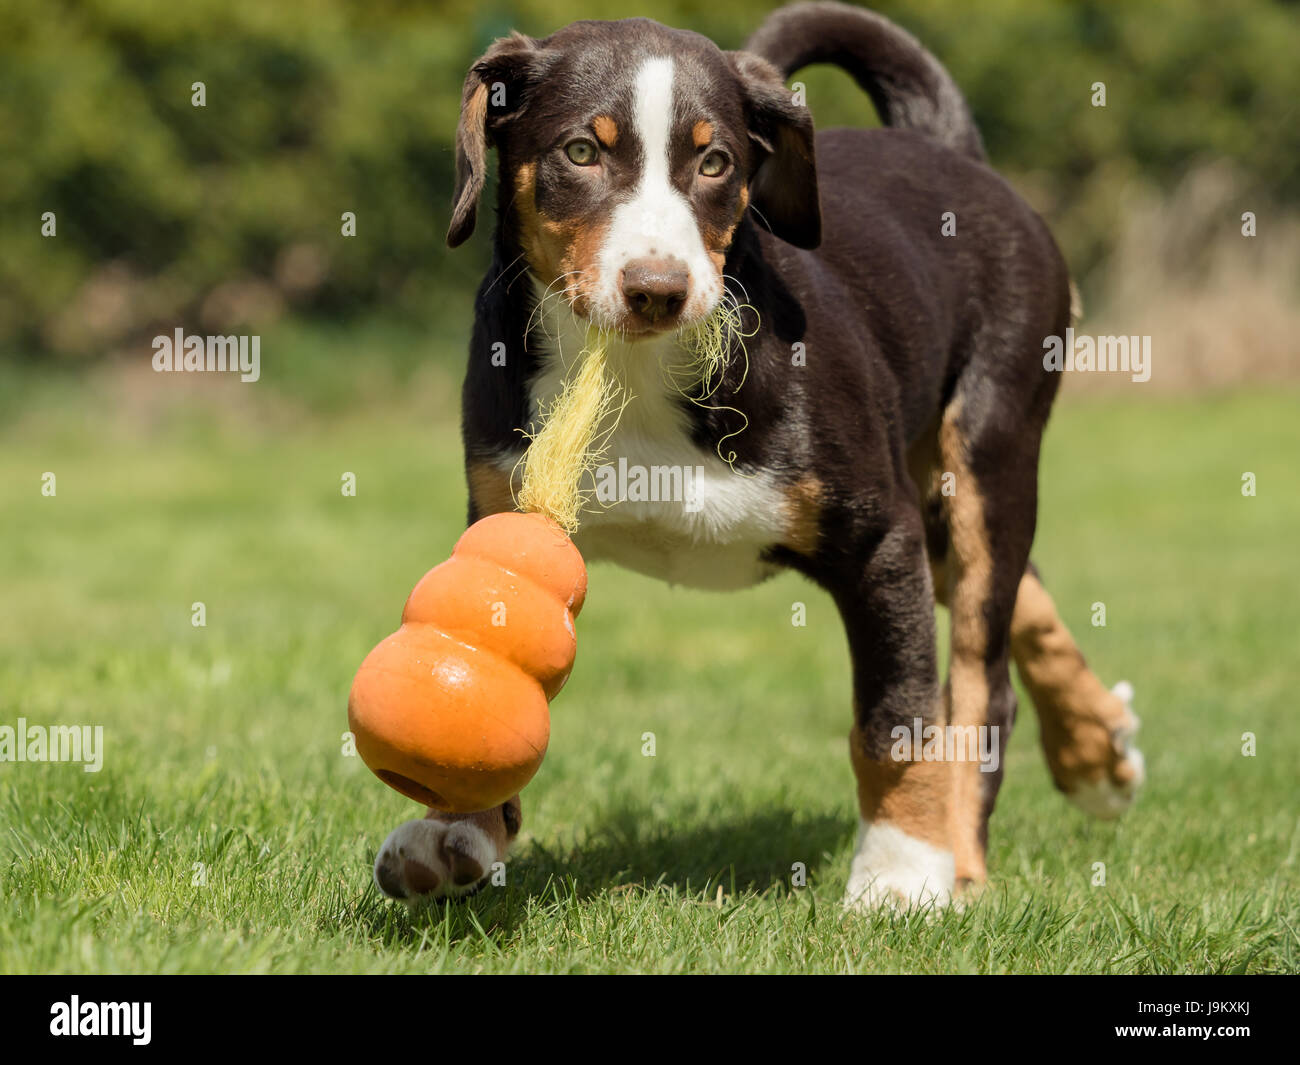 Appenzeller puppy playing - Stock Image